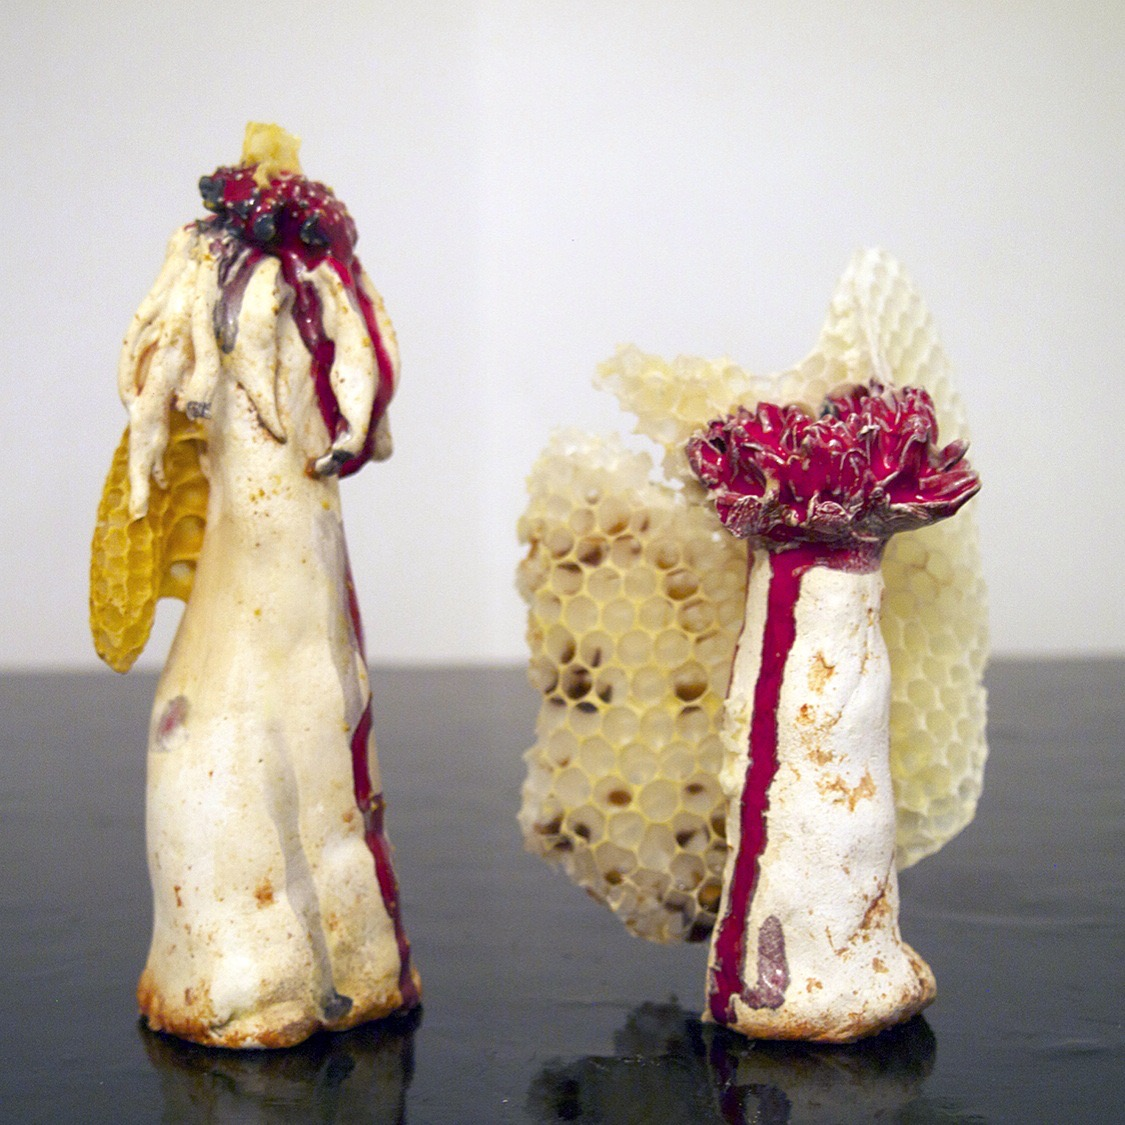 Flower Arrangement 2 , 2015, Ceramic and beeswax, dimensions variable